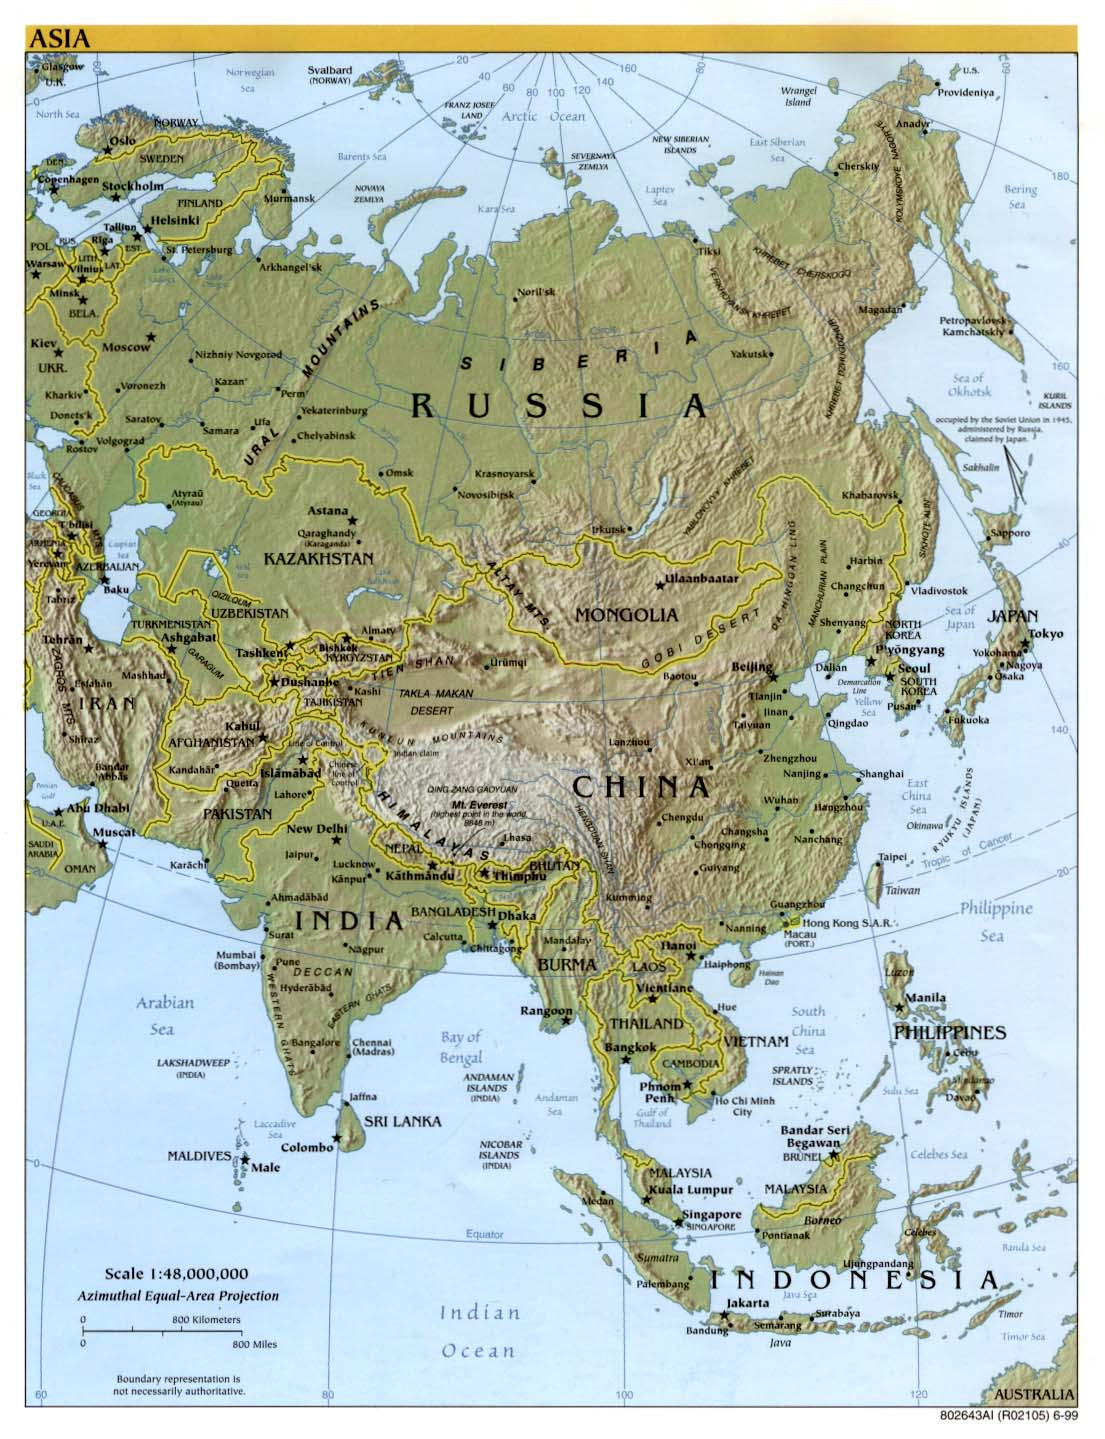 Asia physical map 1999